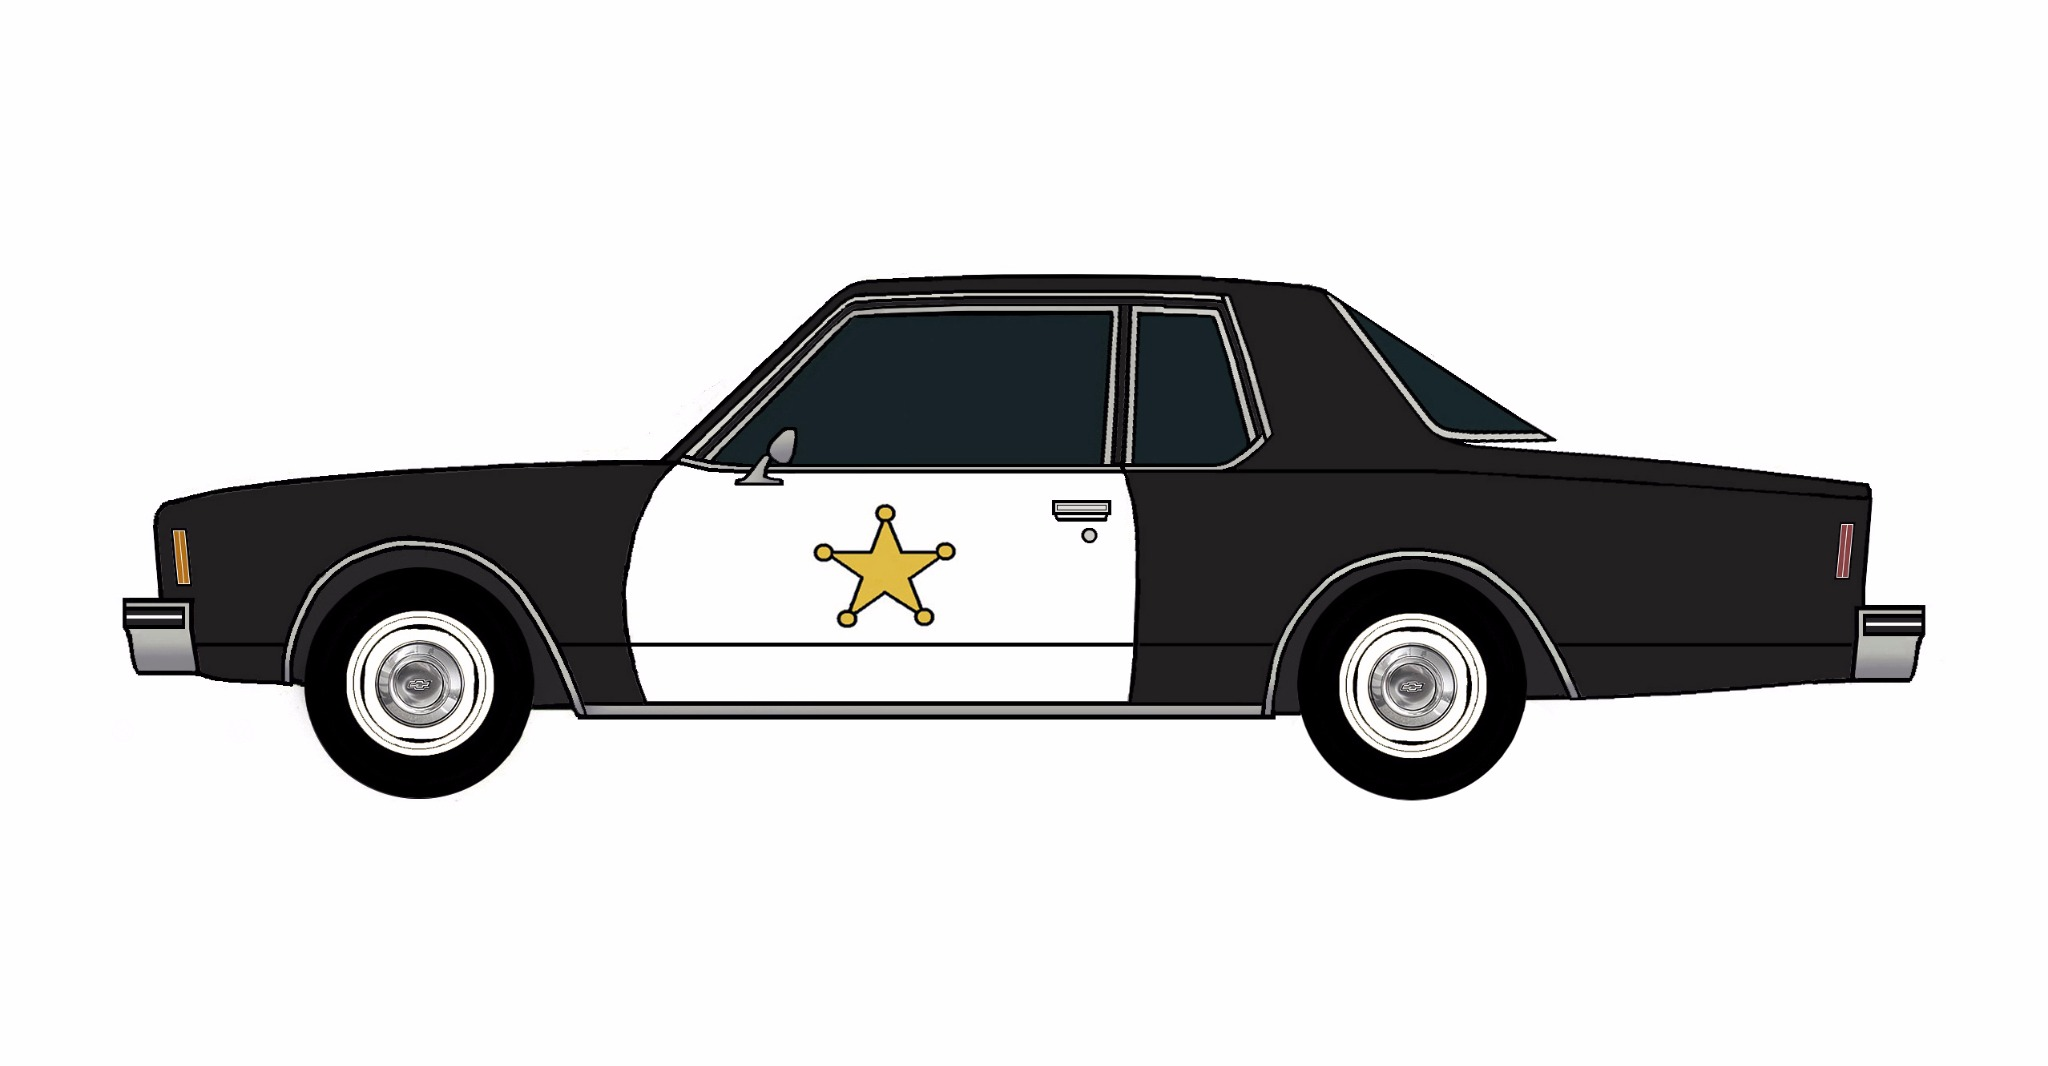 1978 Chevy Impala Police Coupe BLACK